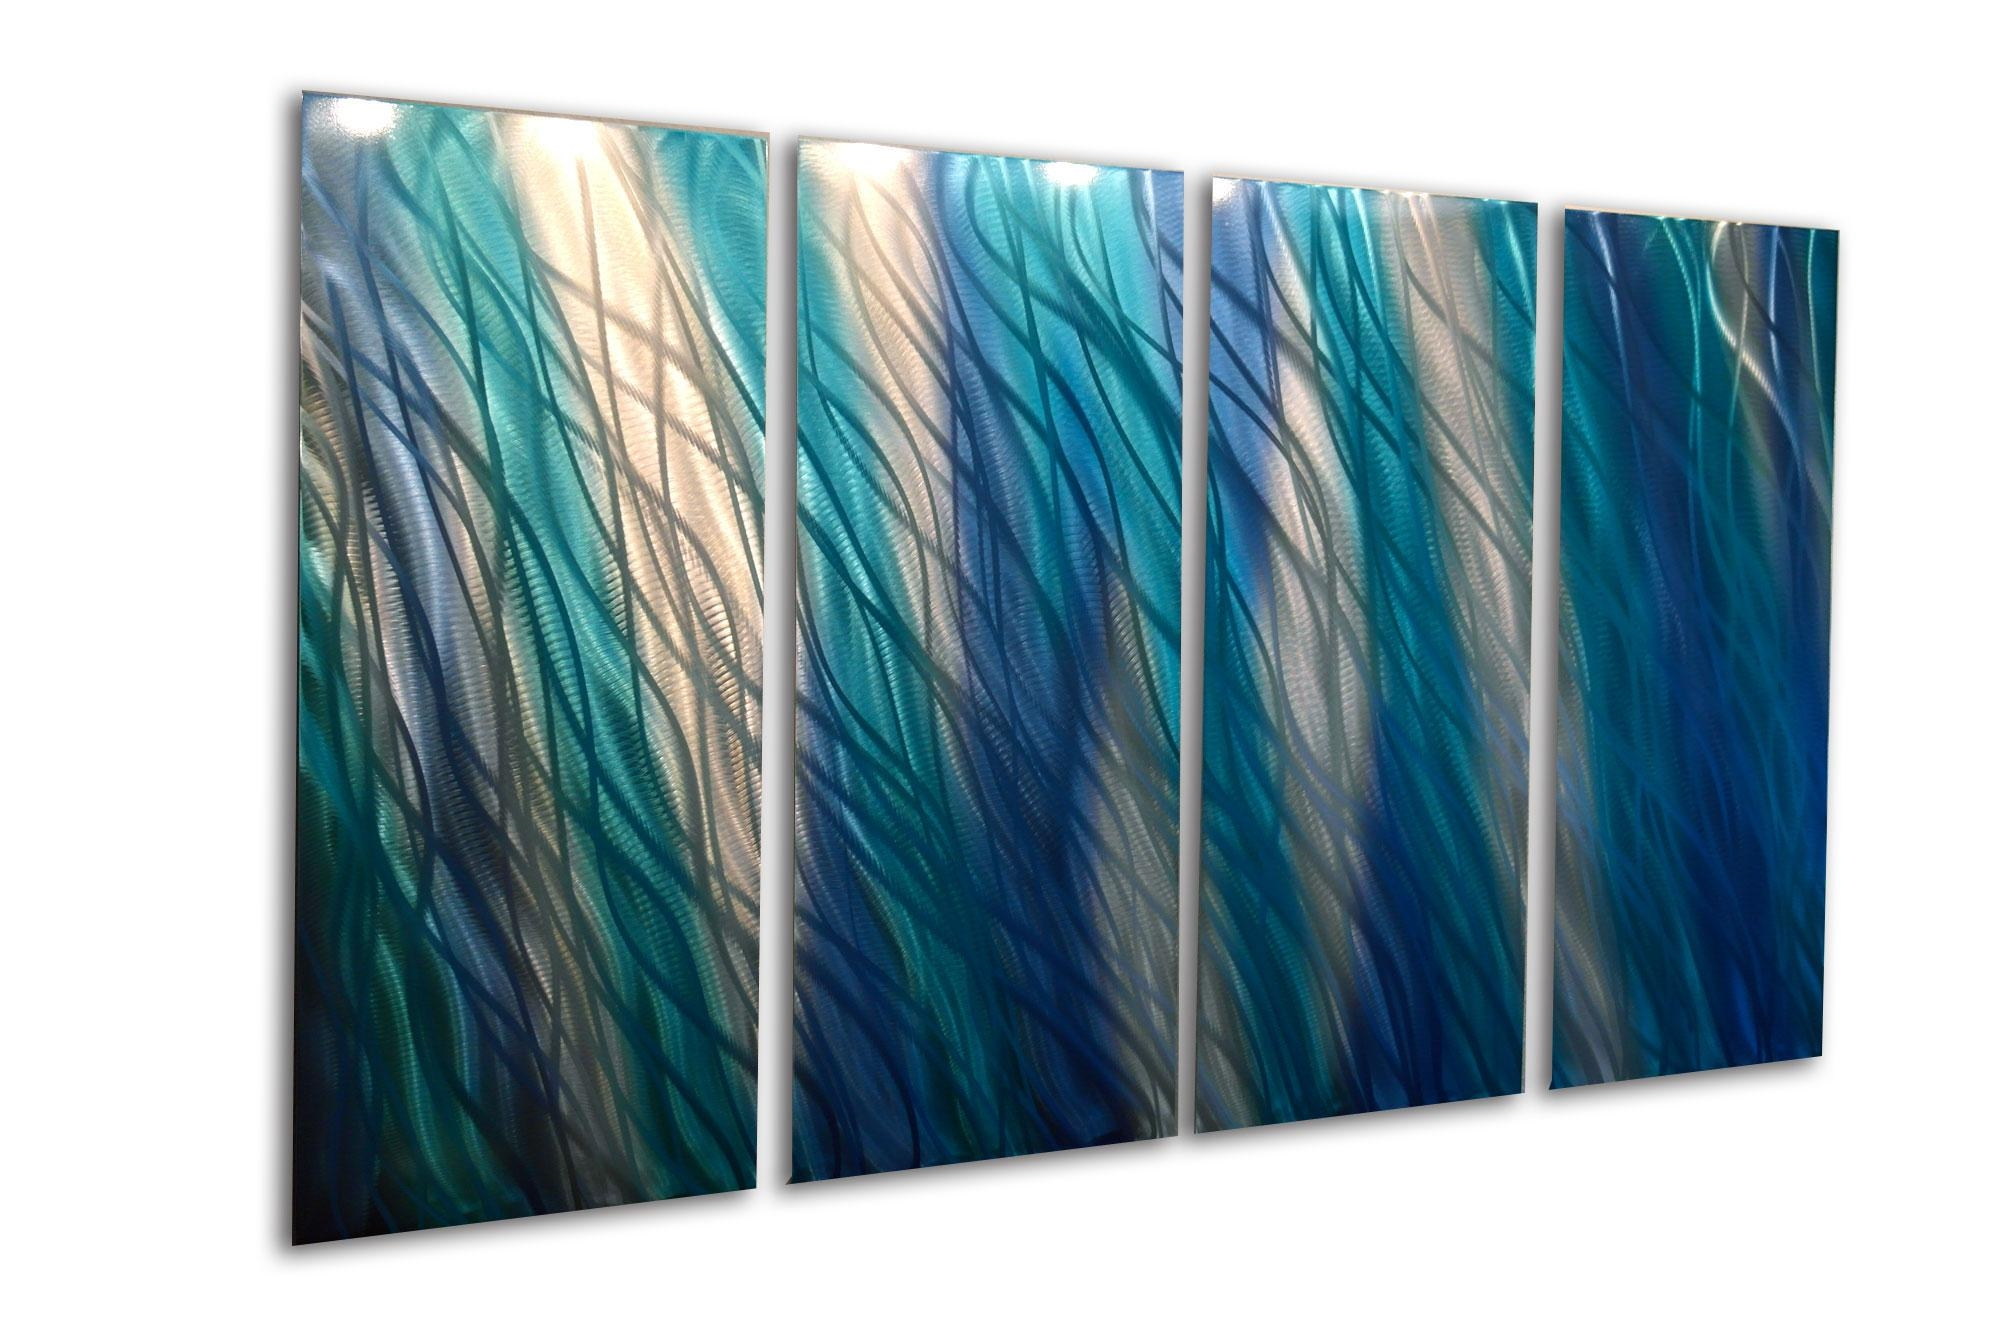 Reef Blue 36X63 – Metal Wall Art Abstract Sculpture Modern Decor With Blue And White Wall Art (View 19 of 20)